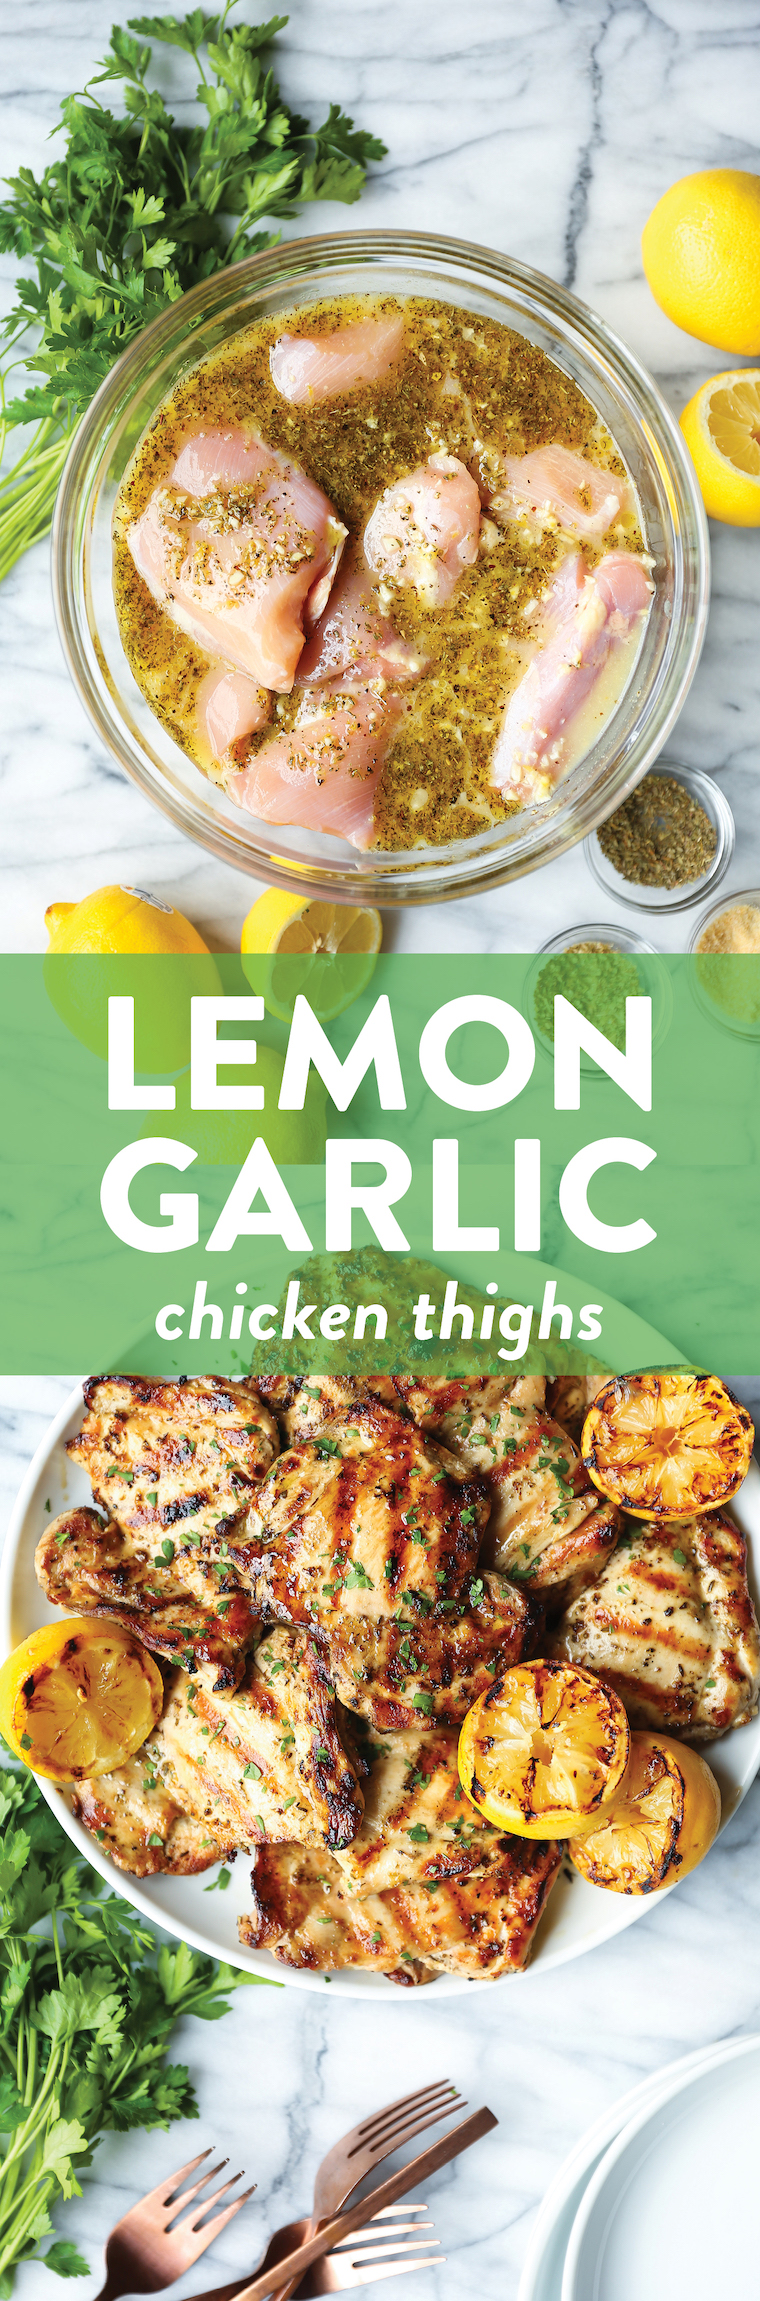 Lemon Garlic Chicken Thighs - Olive oil, lemon juice/zest, garlic, Dijon, oregano, thyme. THE BEST marinade ever. Made on the grill or stovetop. SO SO GOOD.